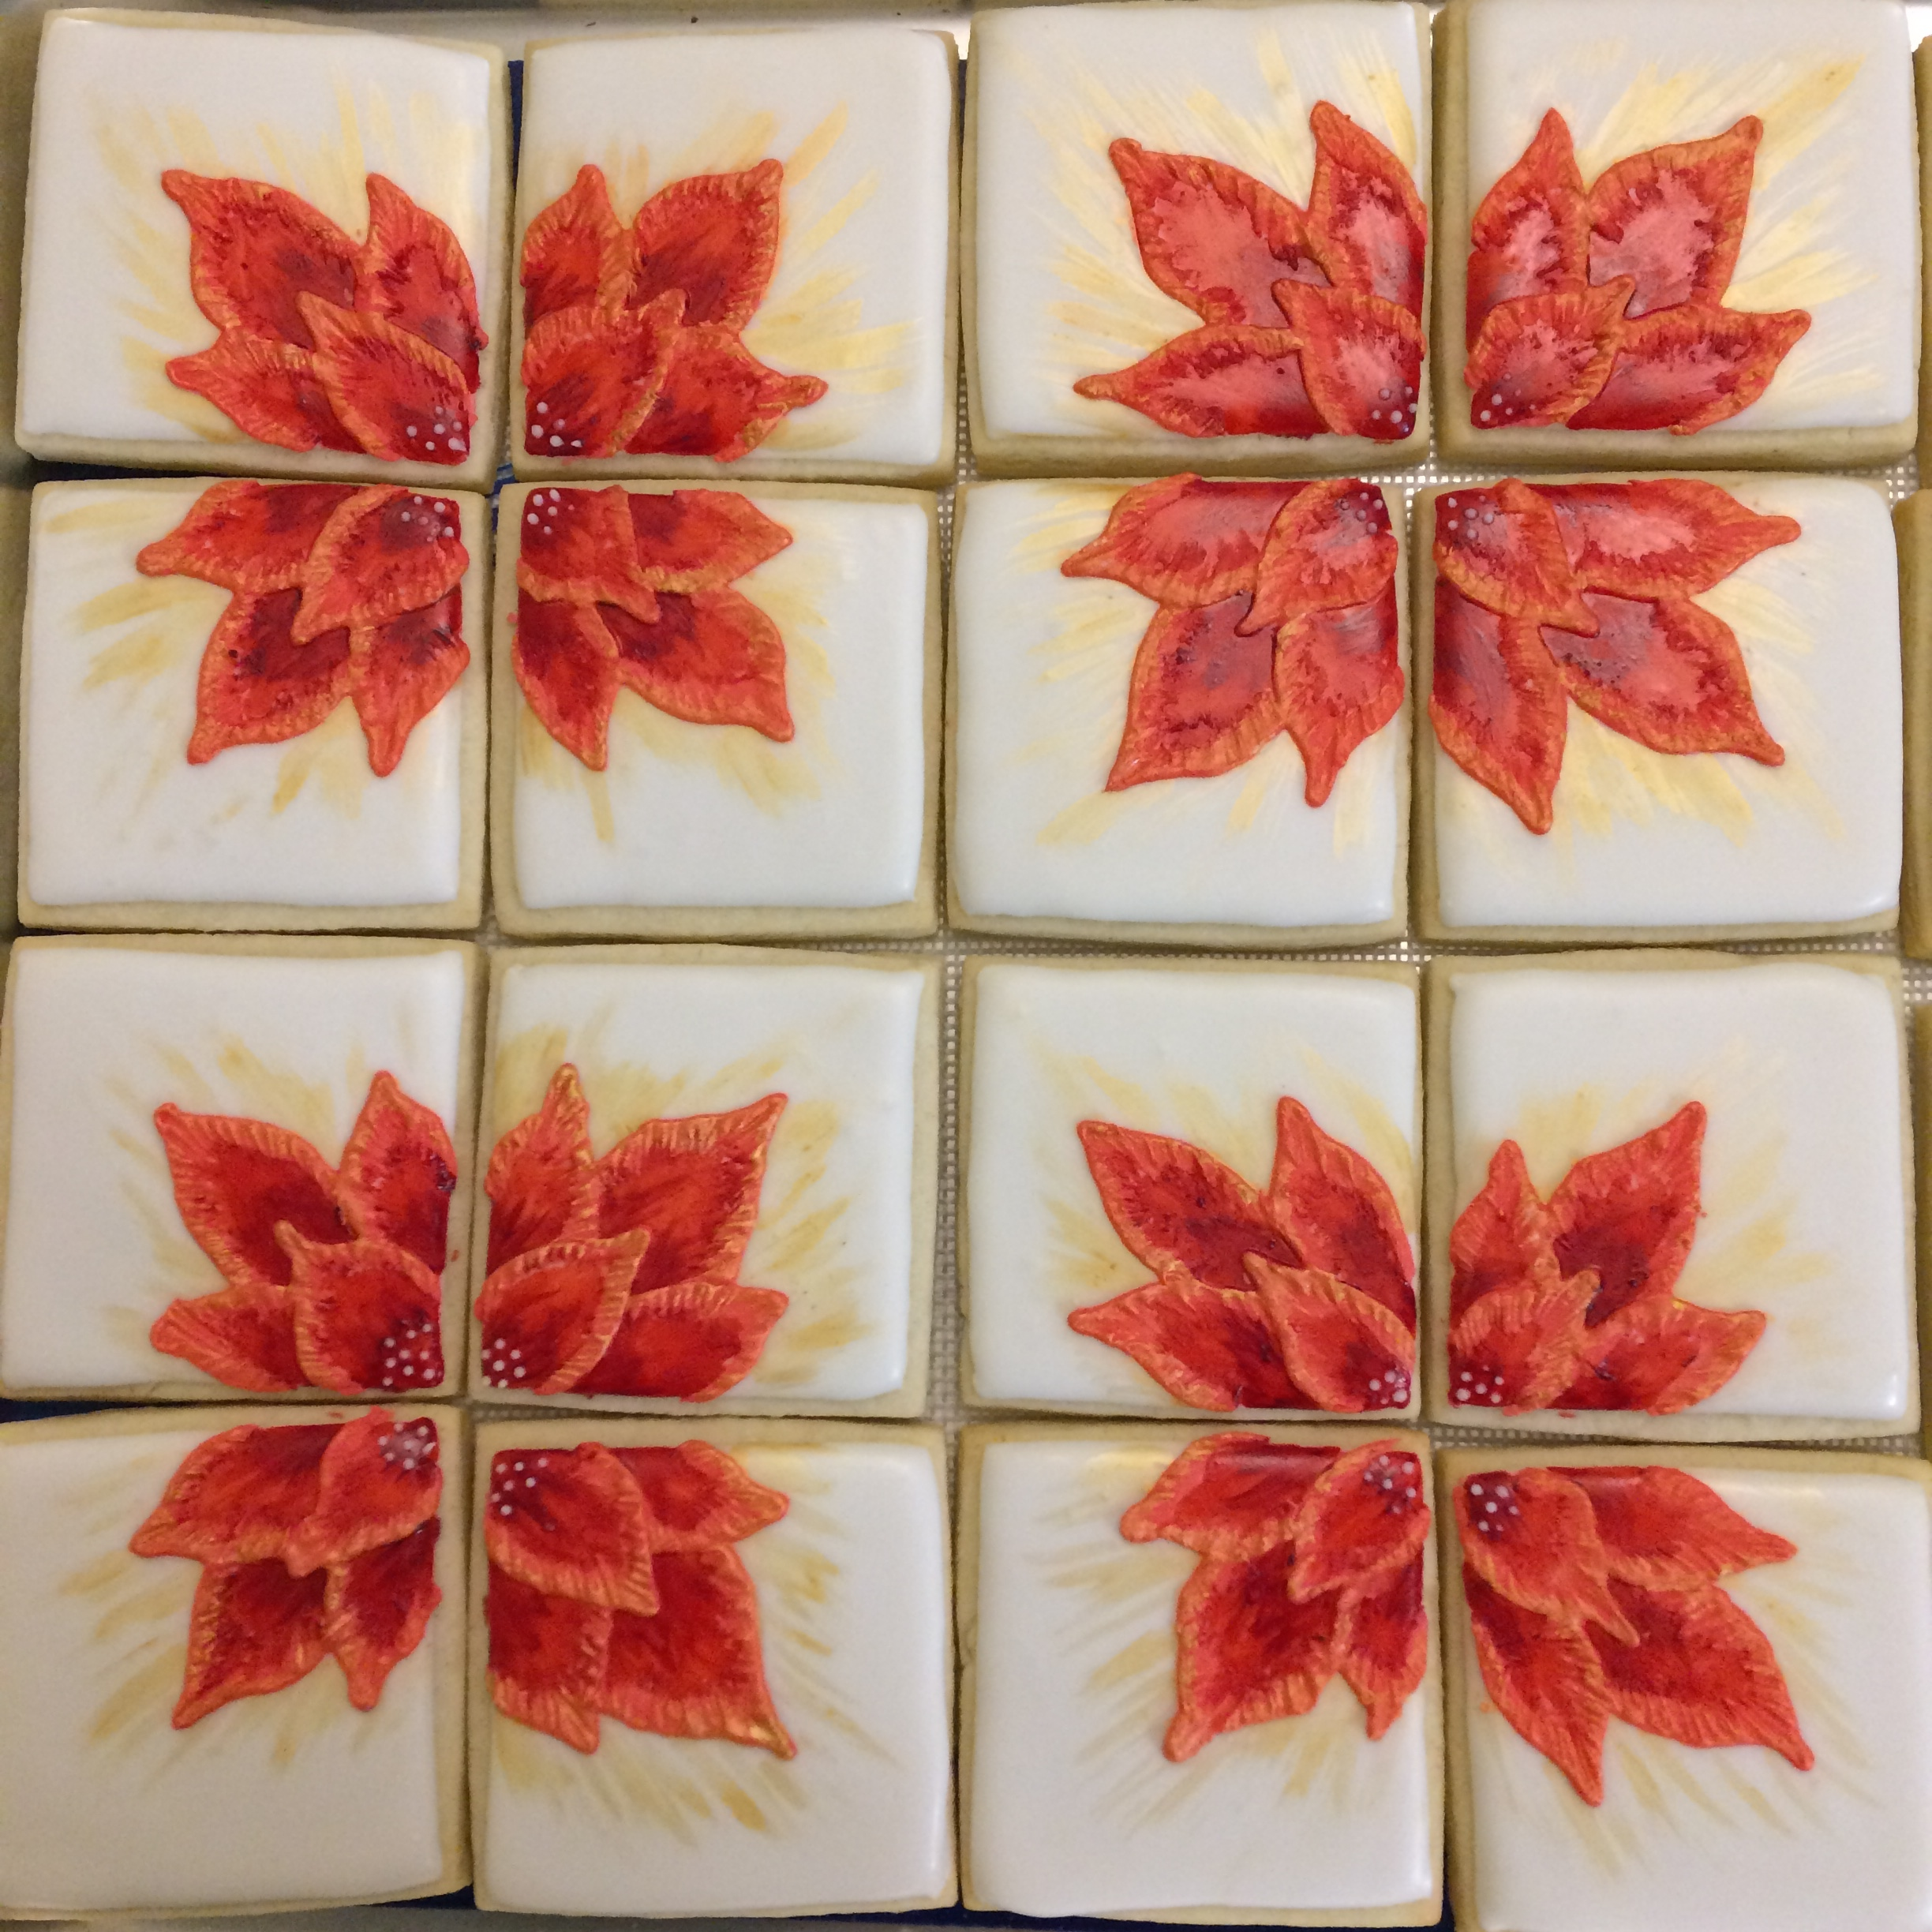 Poinsettia Chocolates by Seed Confections